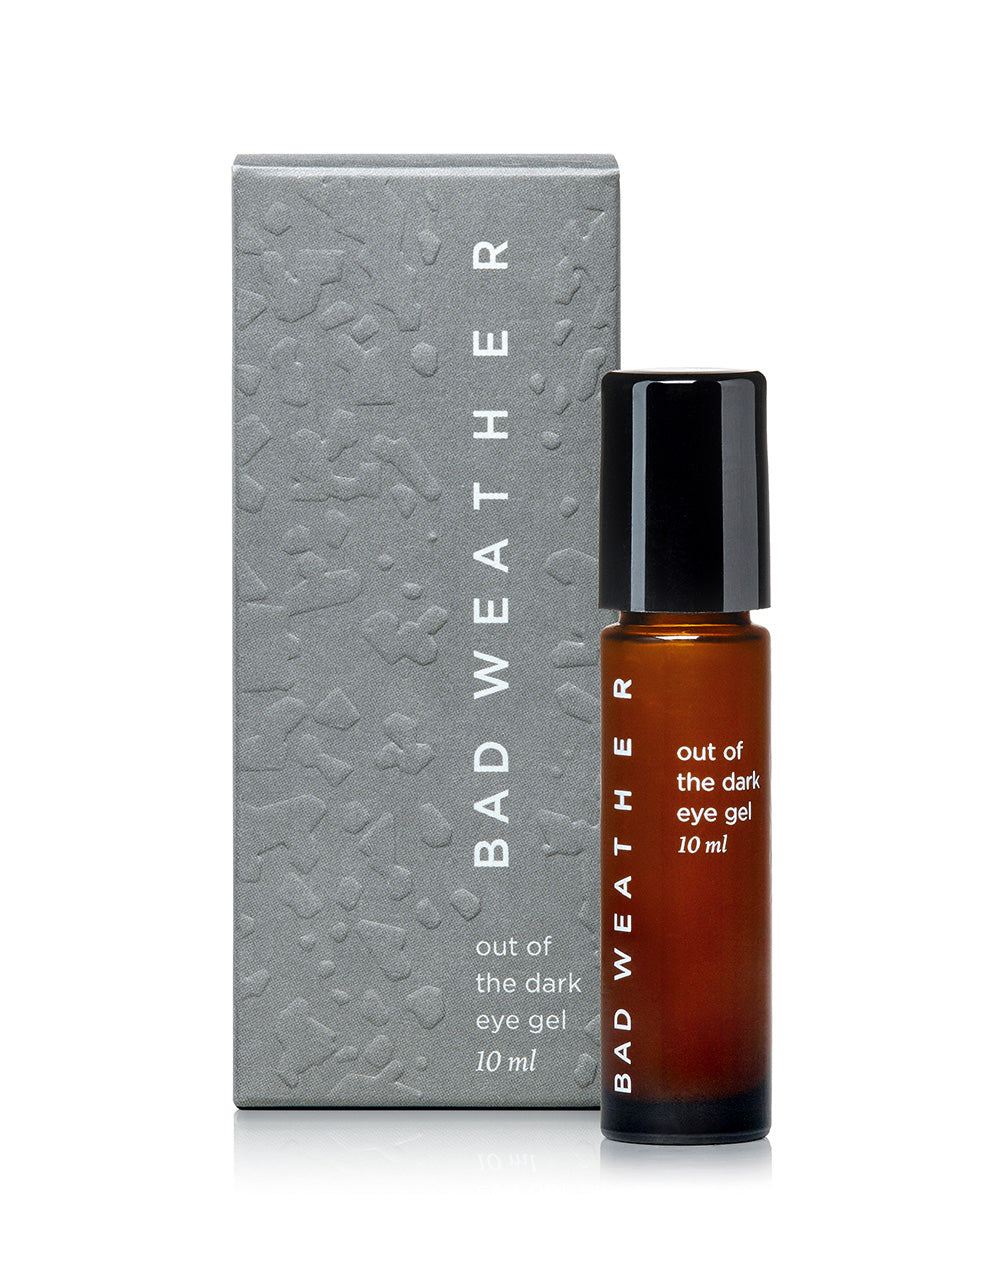 out of the dark eye gel